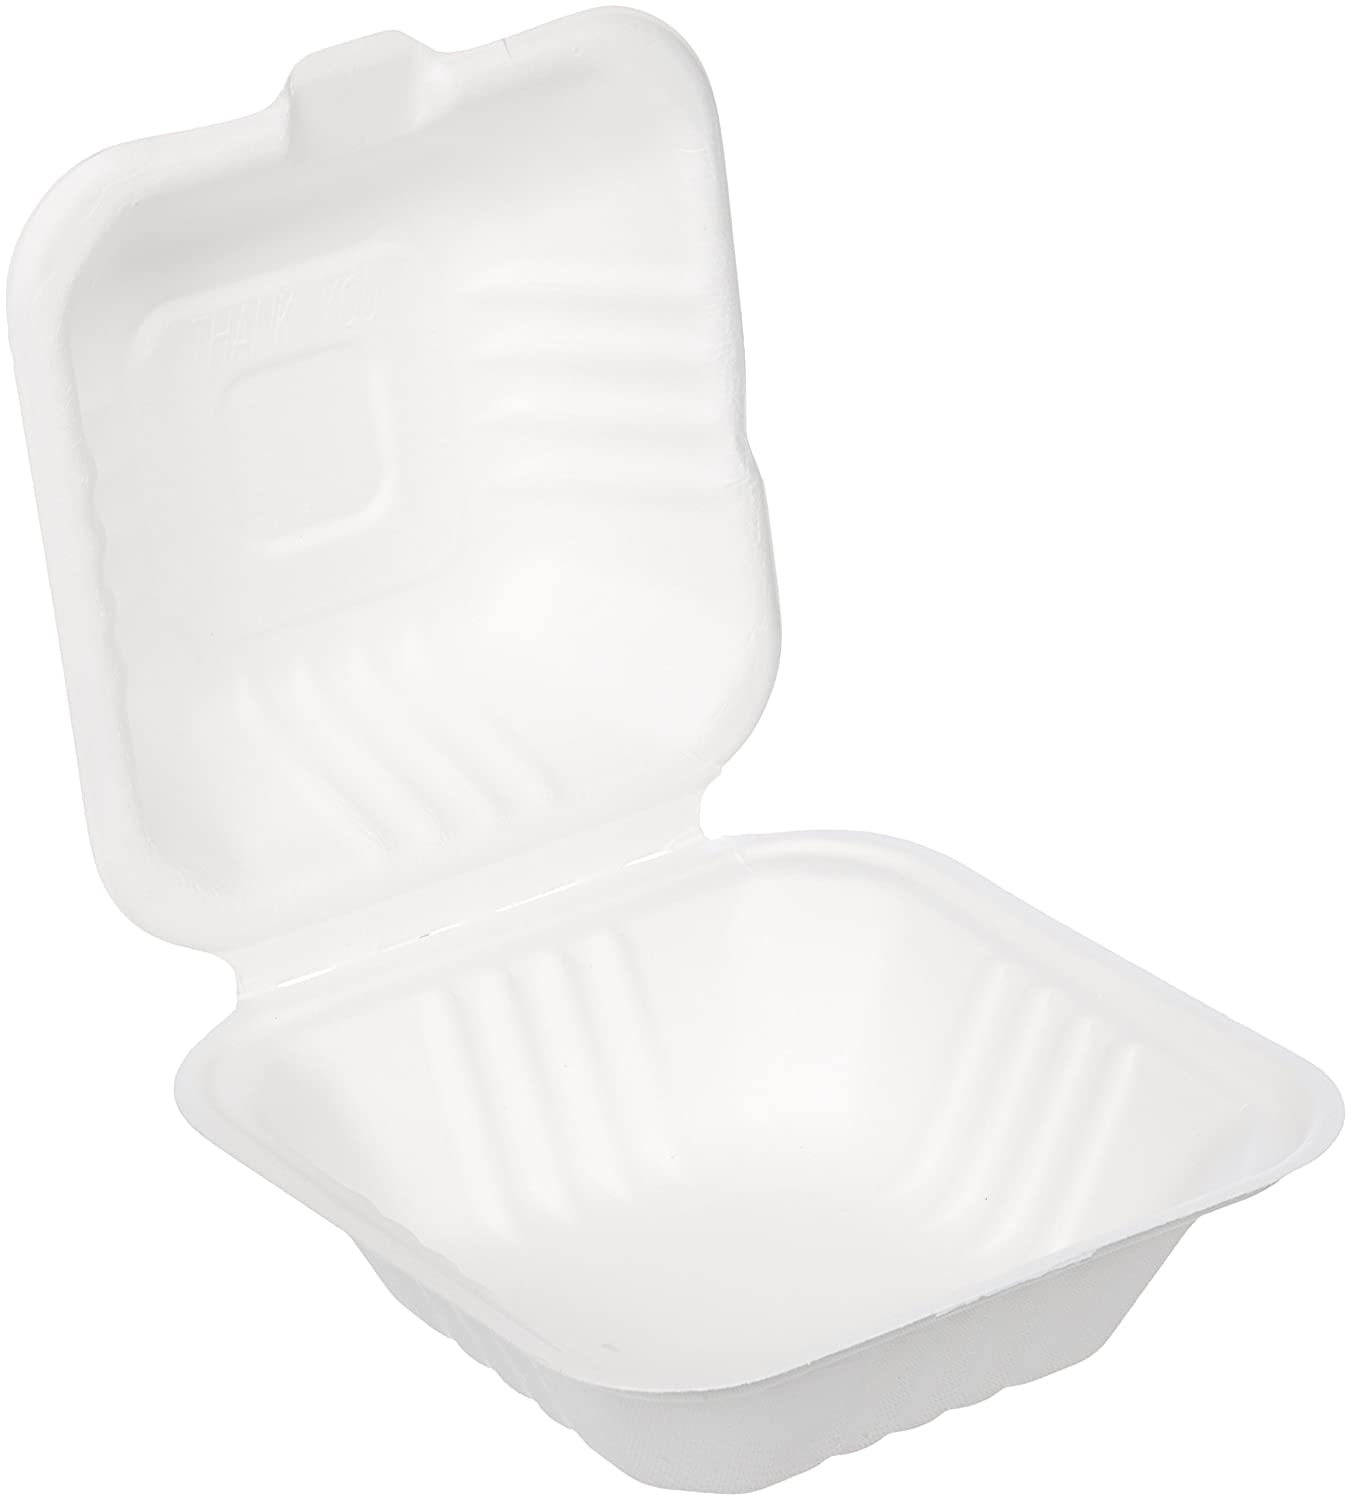 AmazonBasics Compostable Clamshell Take-Out Food Container, 6